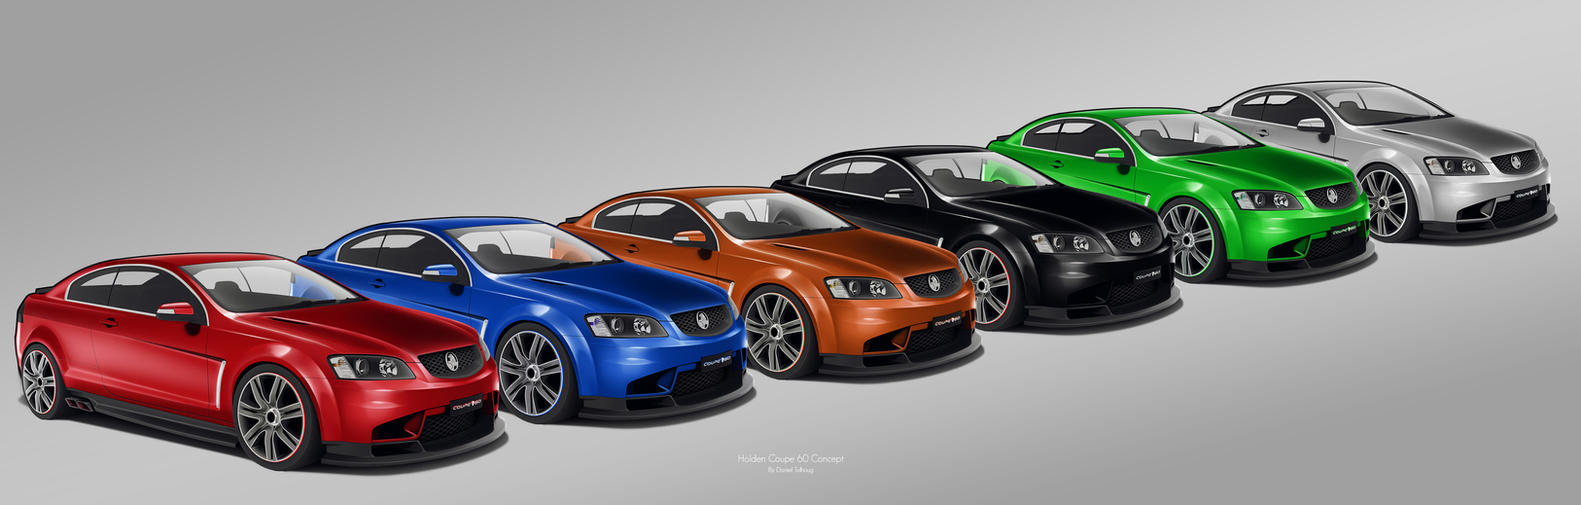 Holden coupe 60 concept v 2 by danieltalhaug on deviantart holden coupe 60 concept v 2 by danieltalhaug vanachro Images